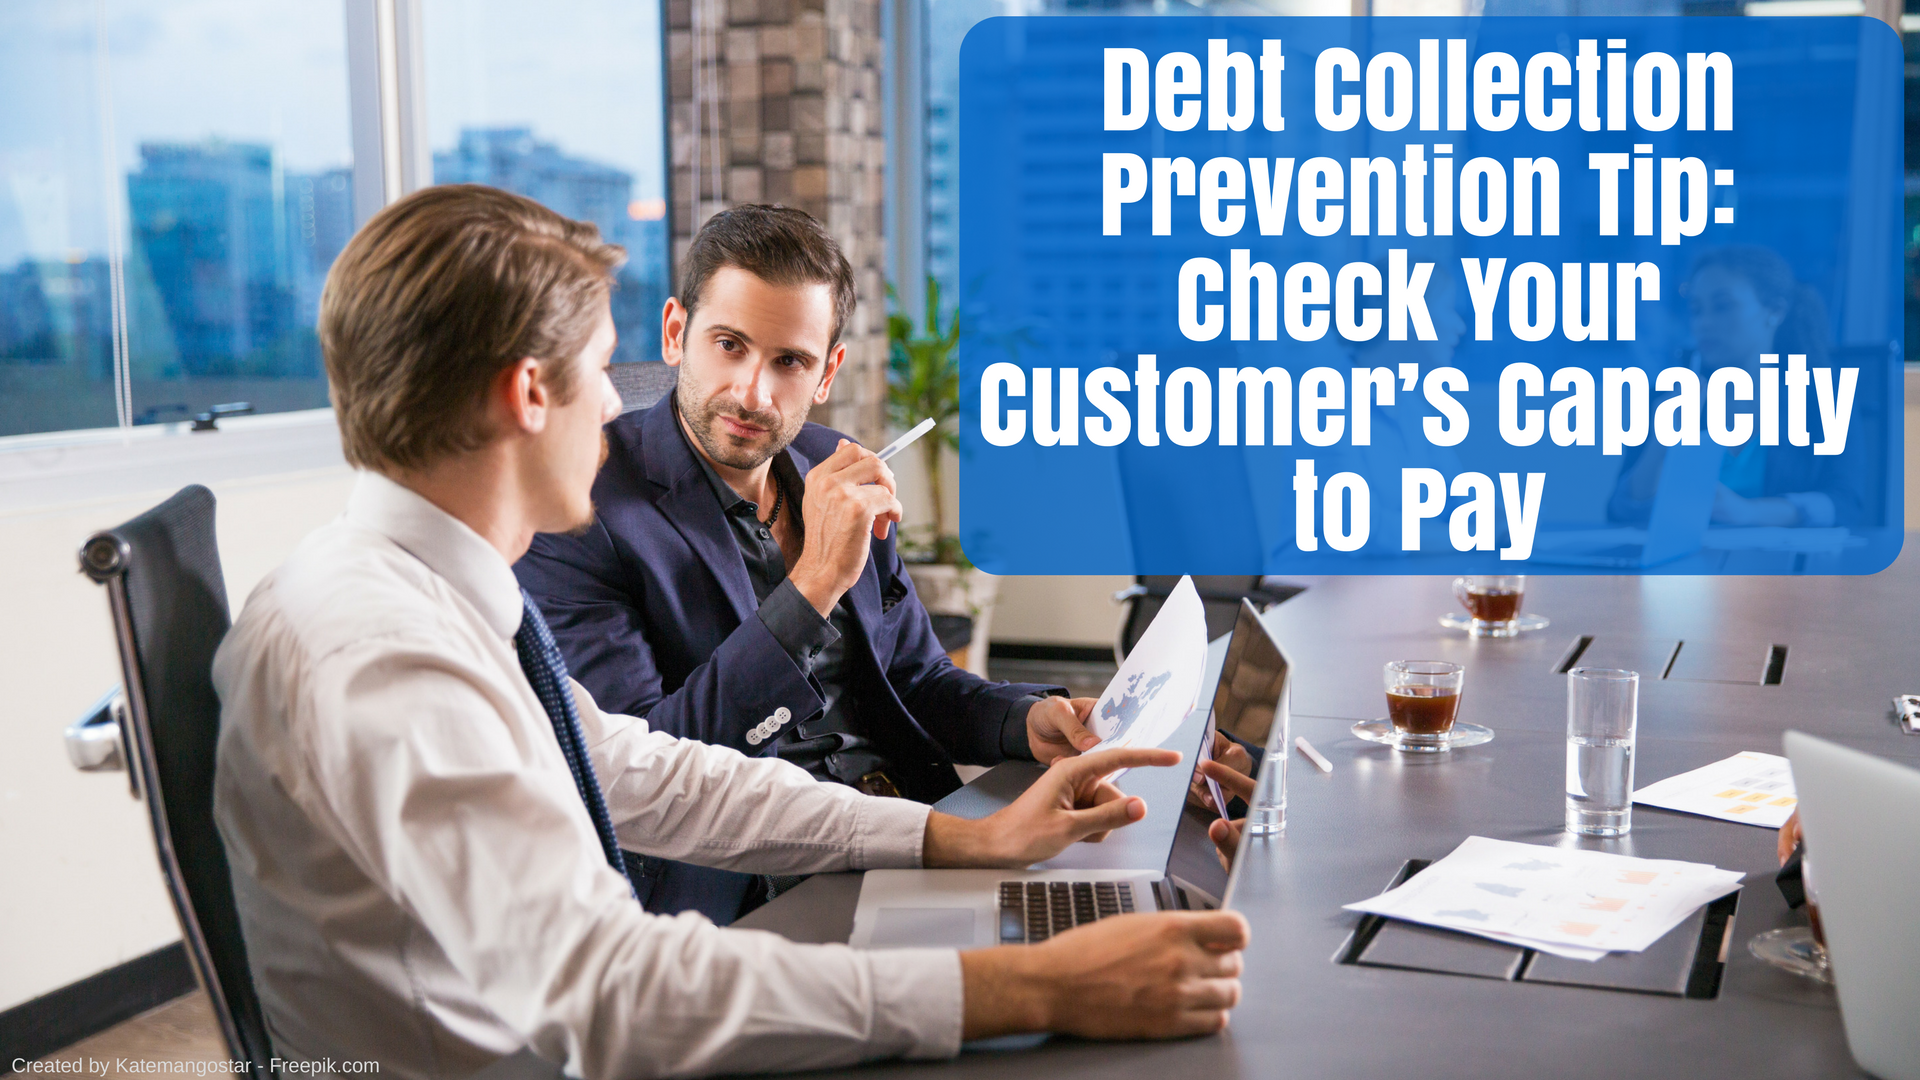 Debt Collection Prevention Tip: Check Your Customer's Capacity to Pay